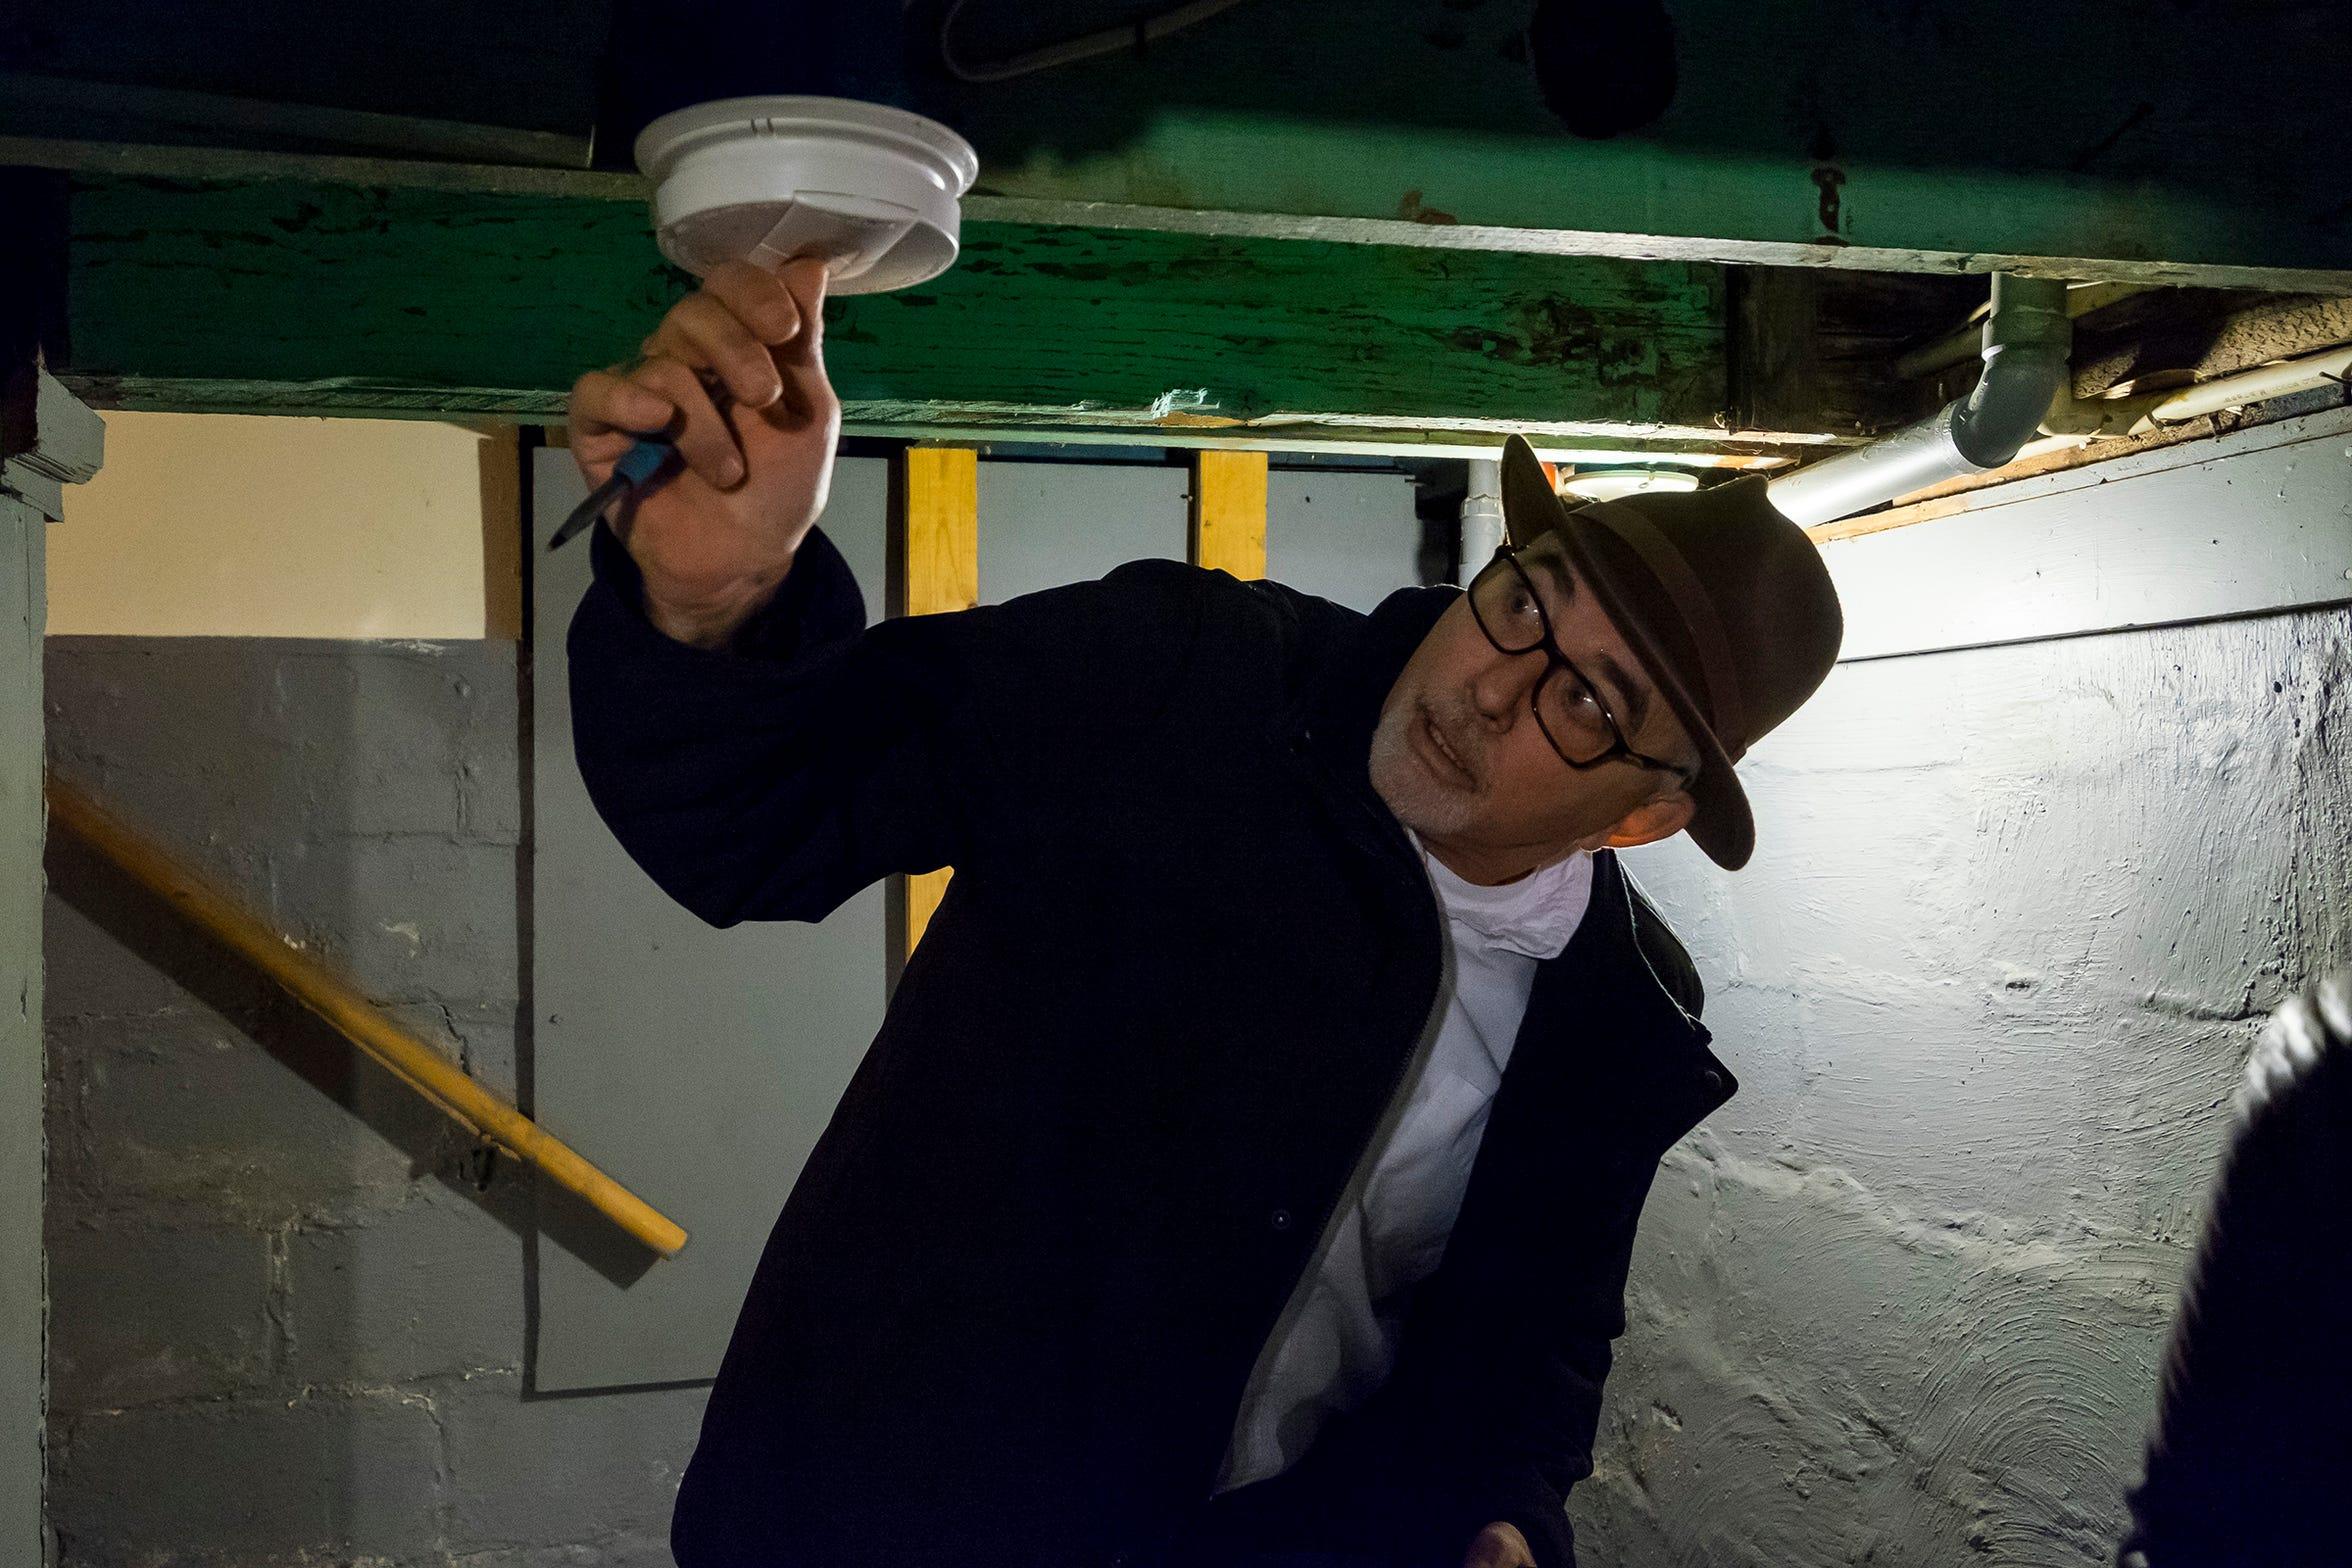 Chief Building Inspector Marvin Shagena checks a smoke detector in a Port Huron rental home Friday, Nov. 19, 2018 during a rental inspection.